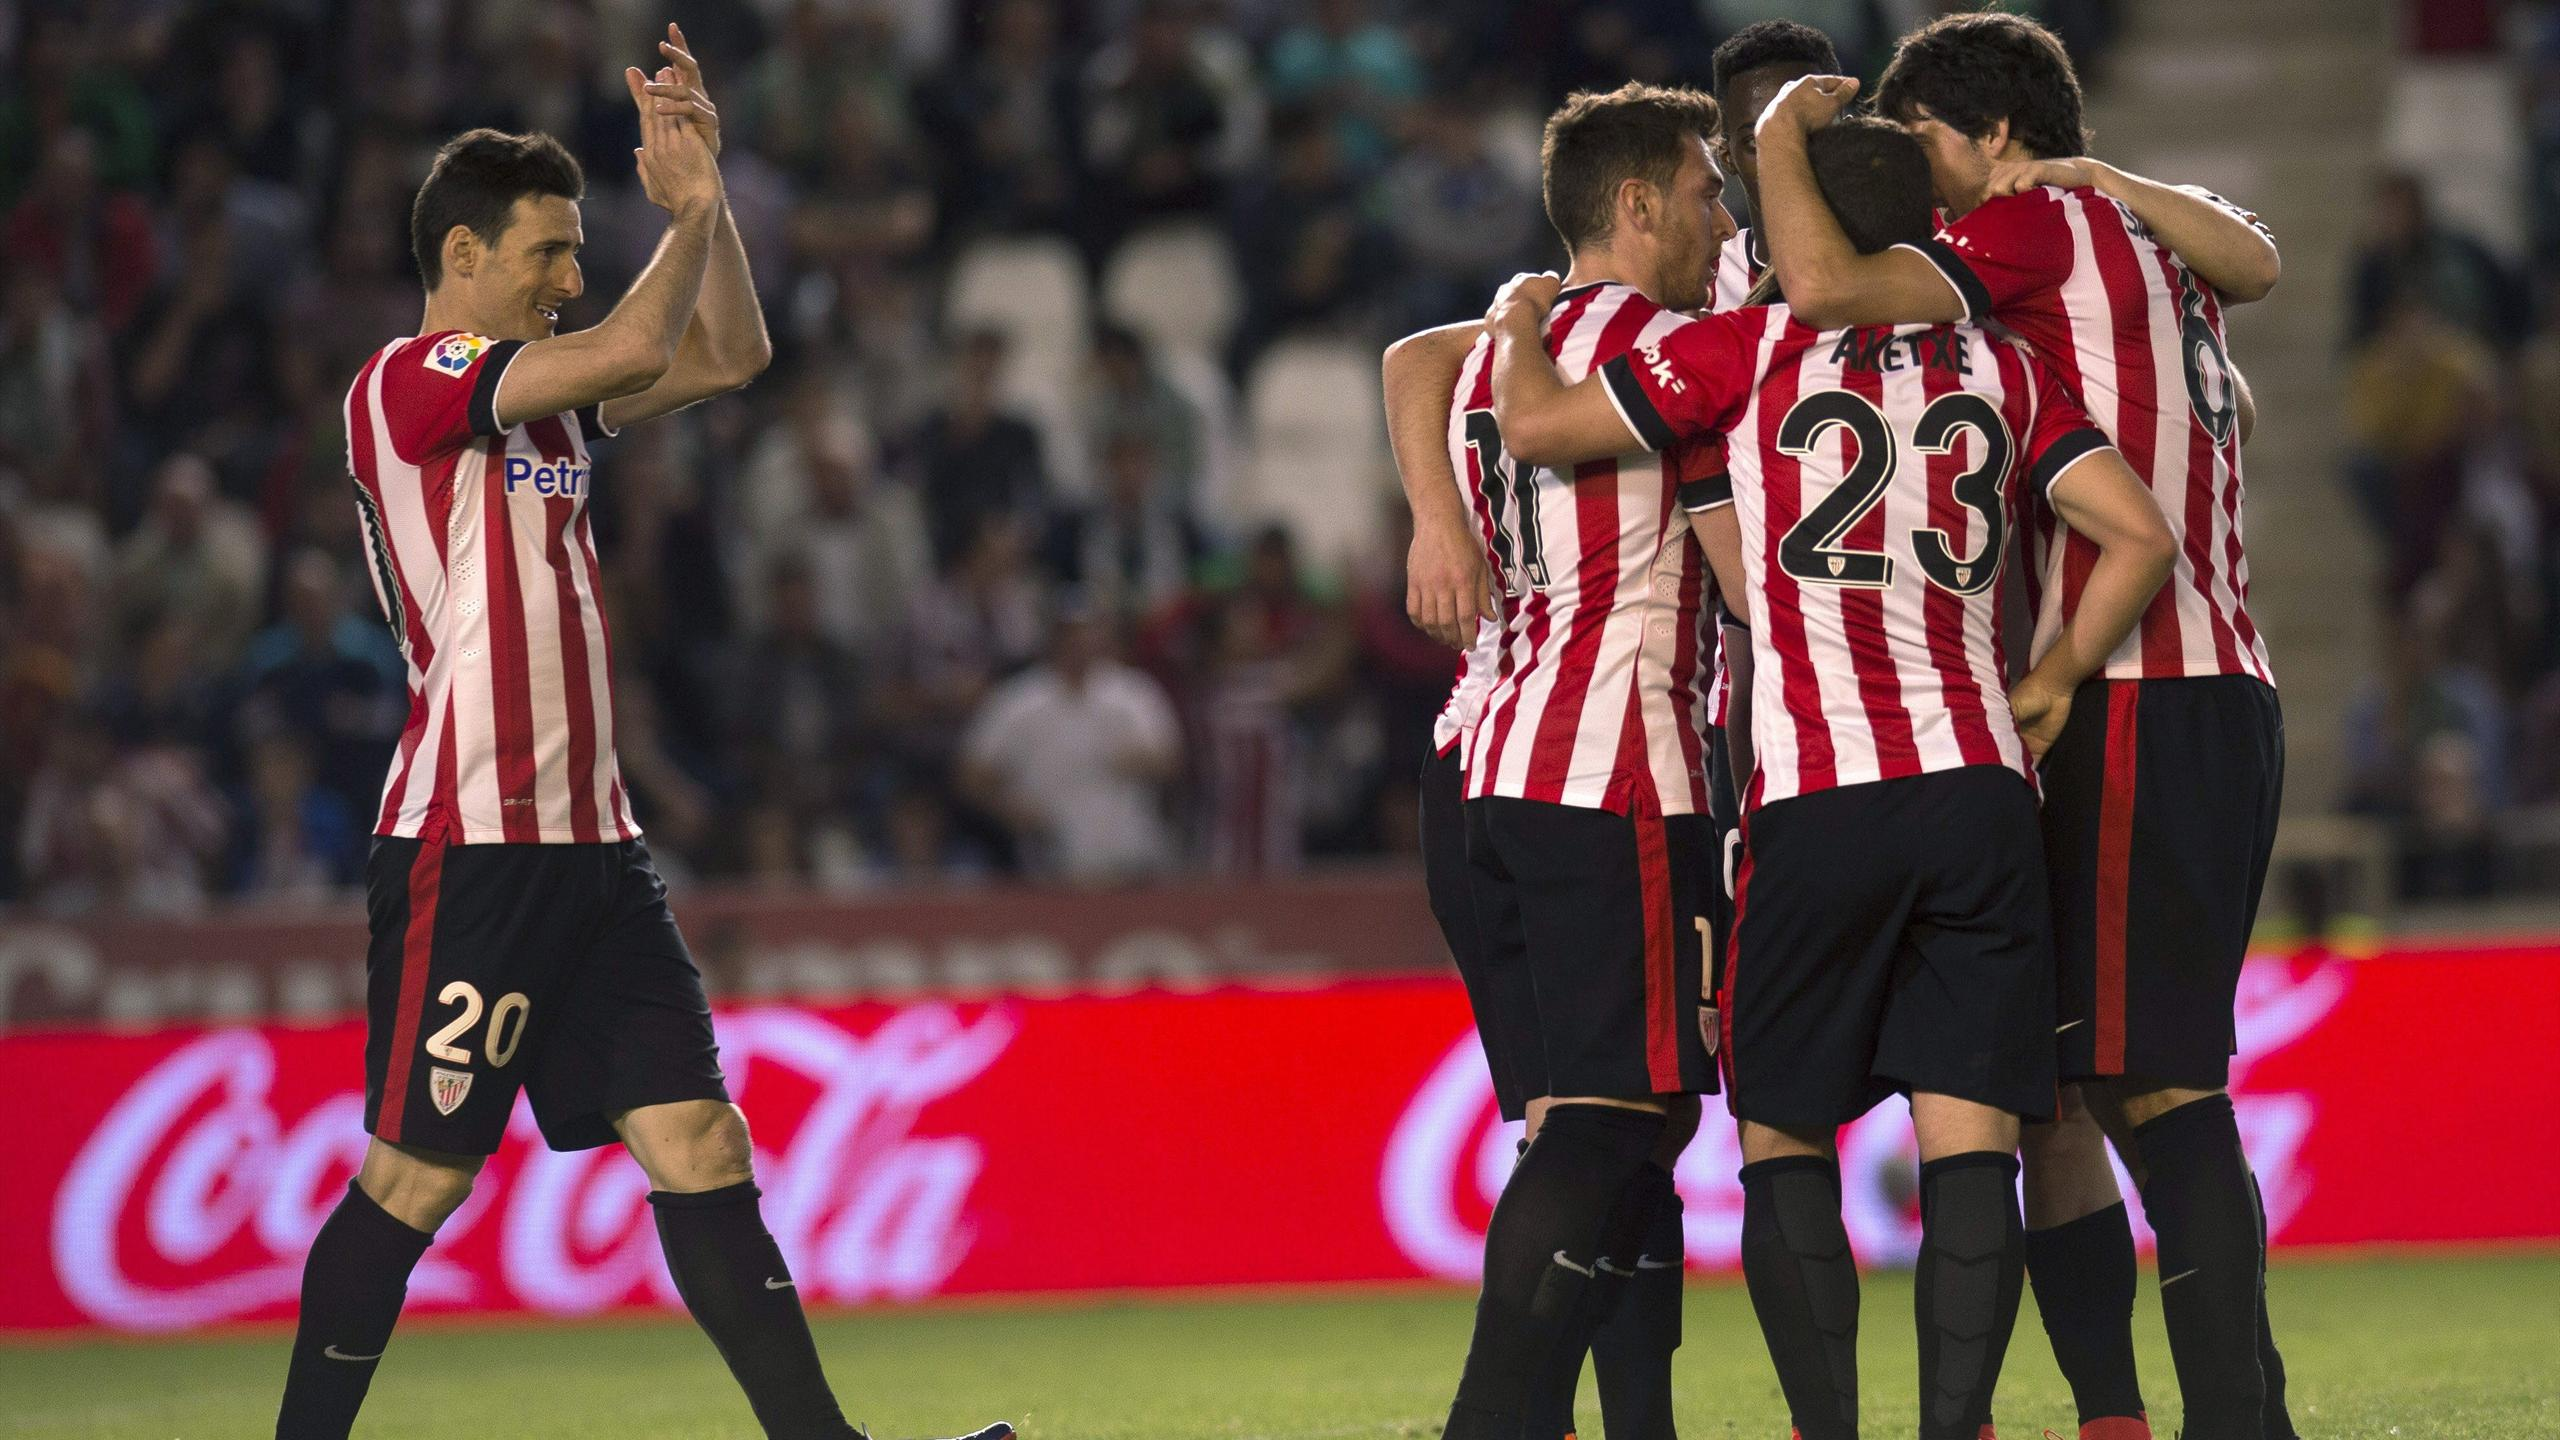 Video: Cordoba vs Athletic Bilbao